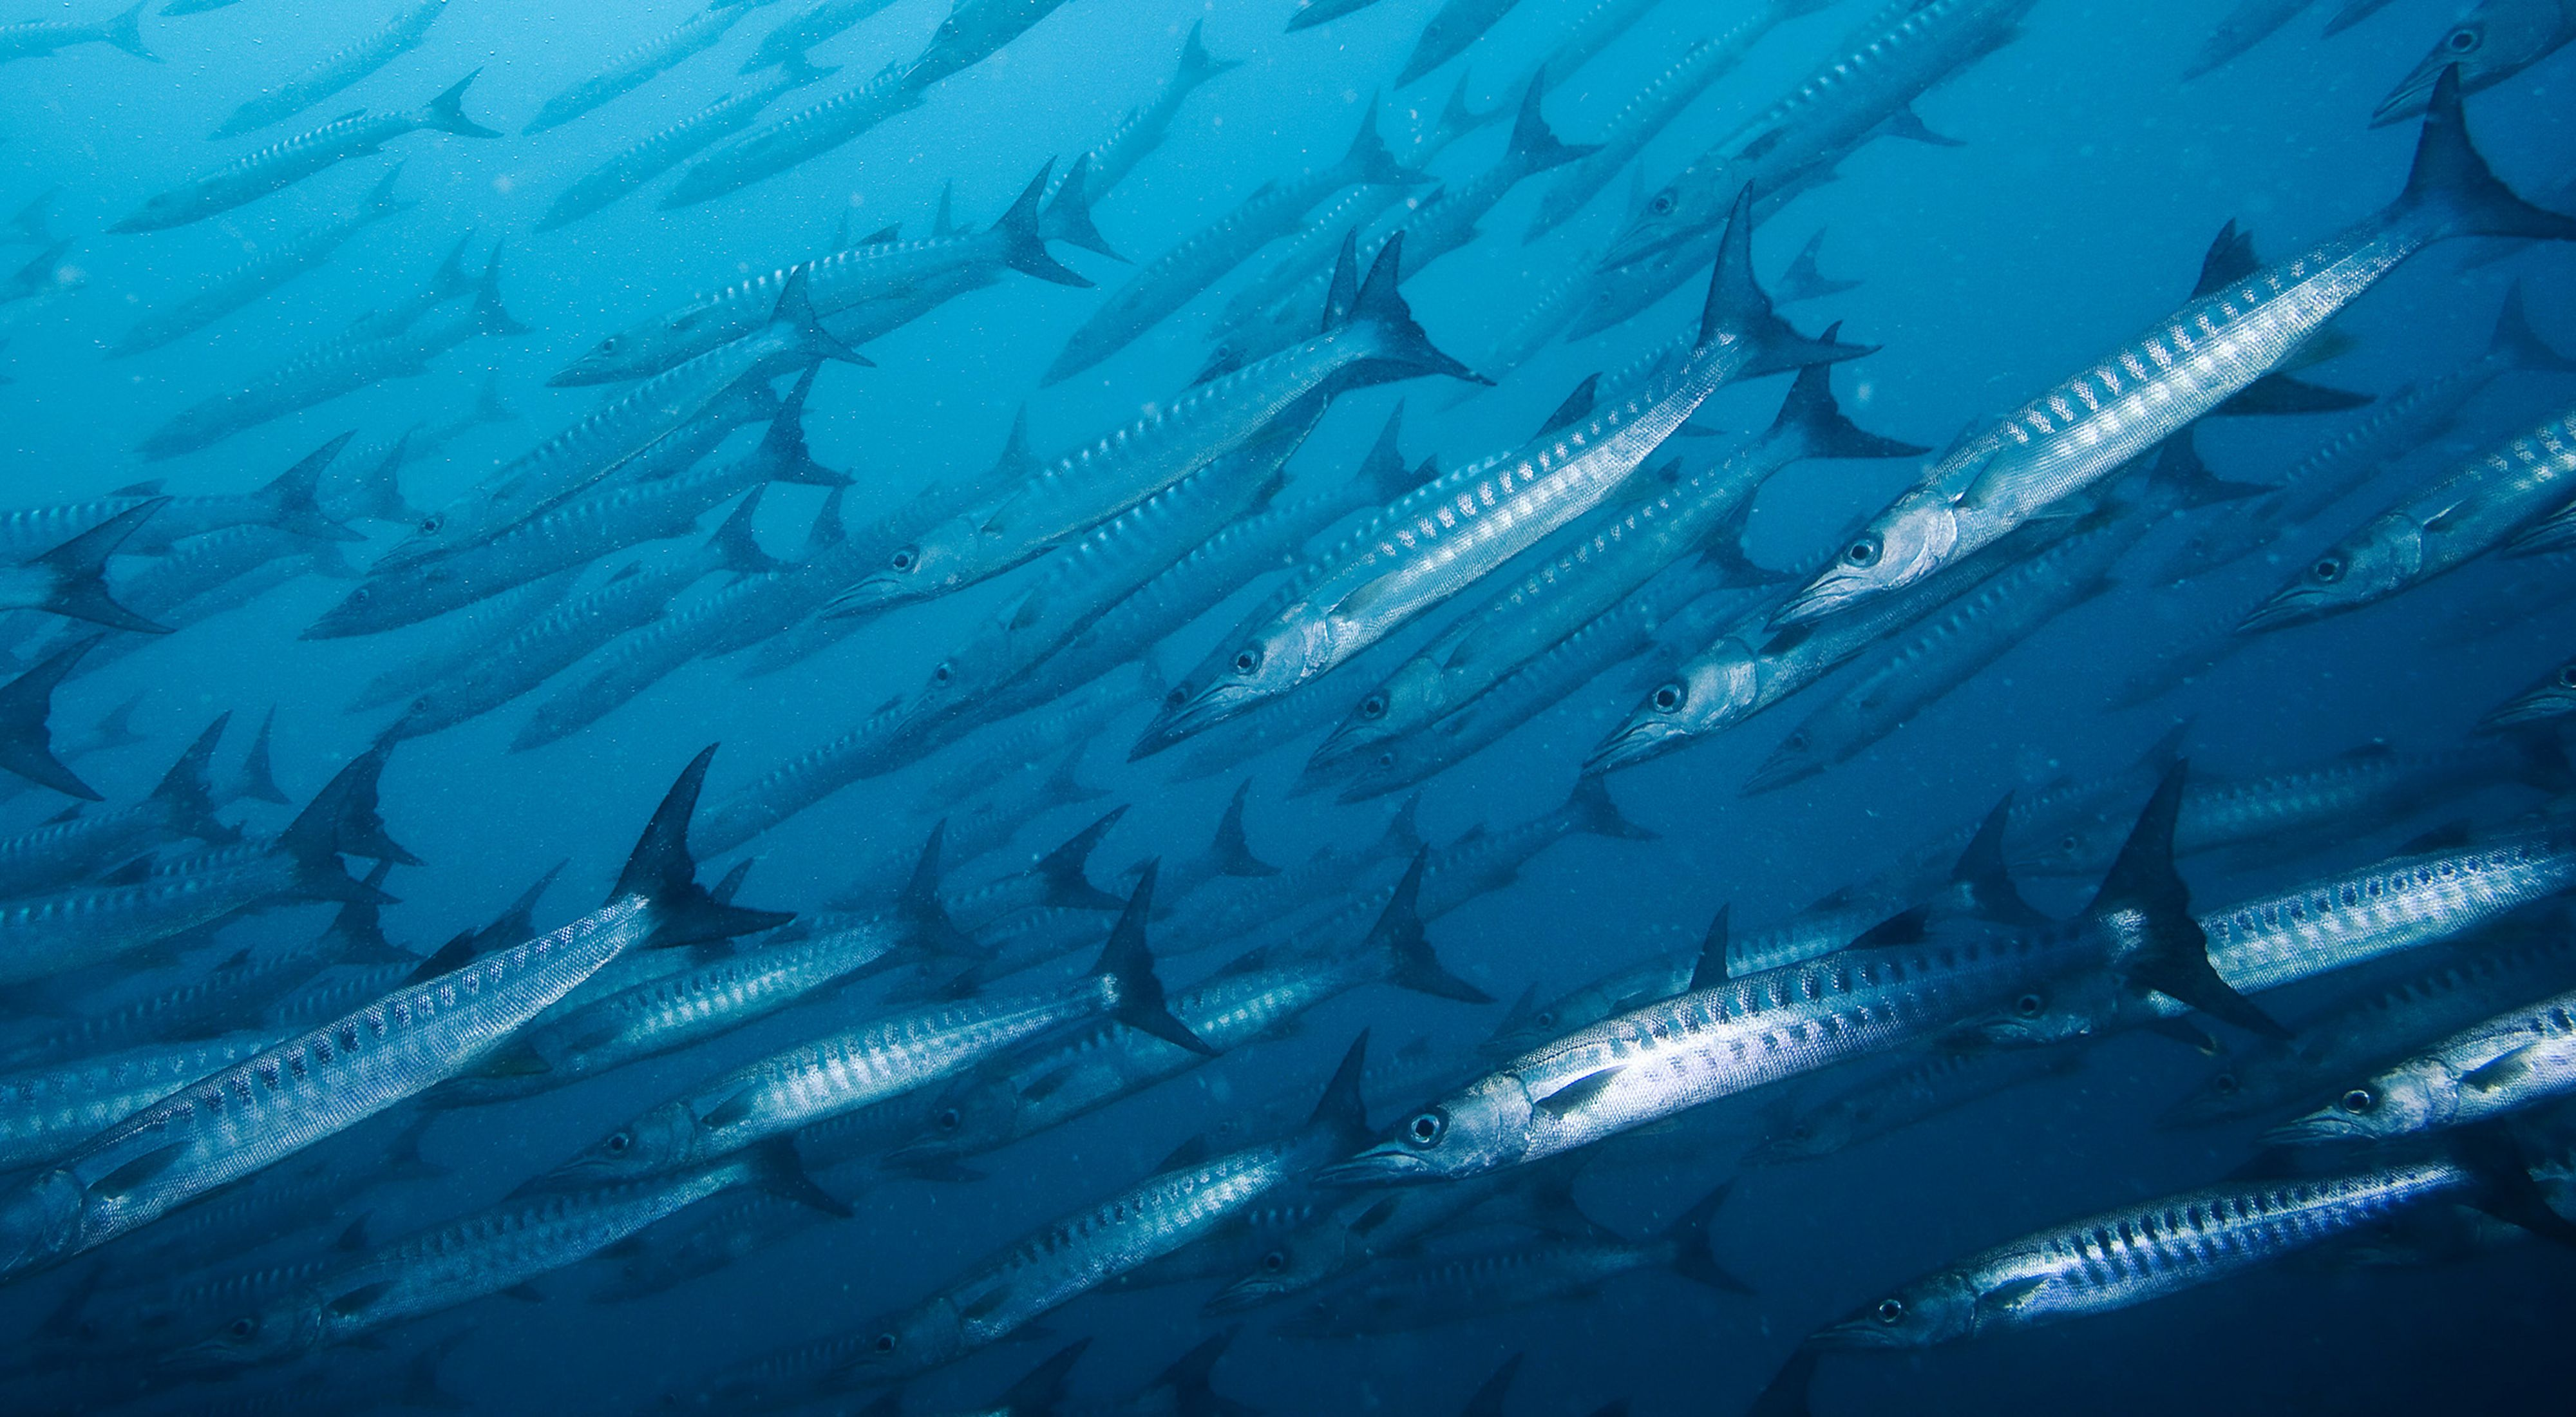 A school of barracuda photographed in the ocean waters off Palau's Rock Islands.